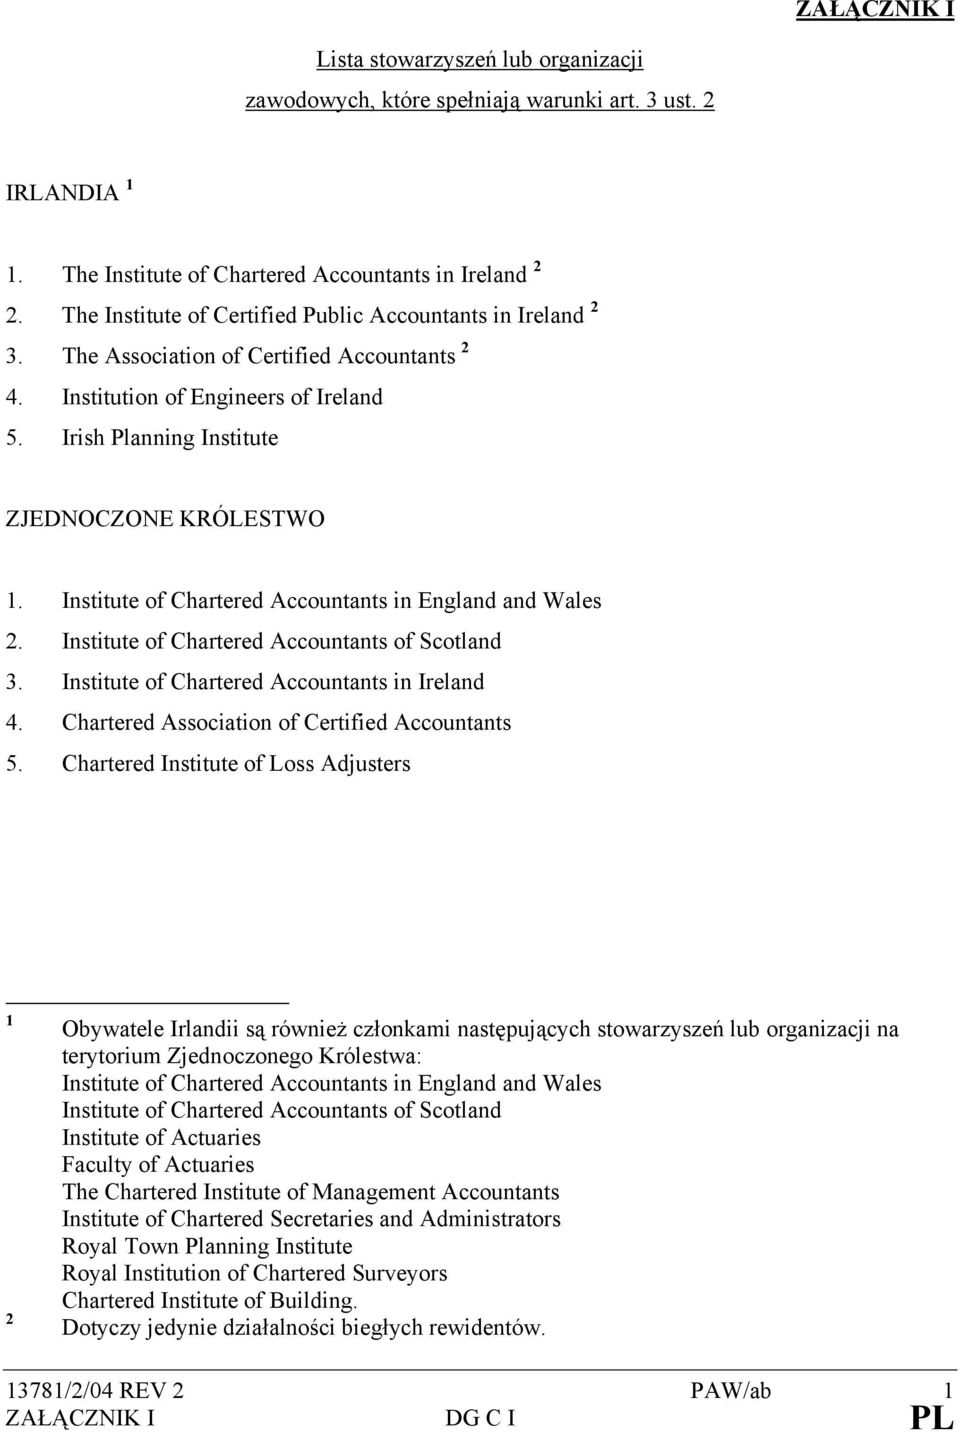 Institute of Chartered Accountants in England and Wales 2. Institute of Chartered Accountants of Scotland 3. Institute of Chartered Accountants in Ireland 4.